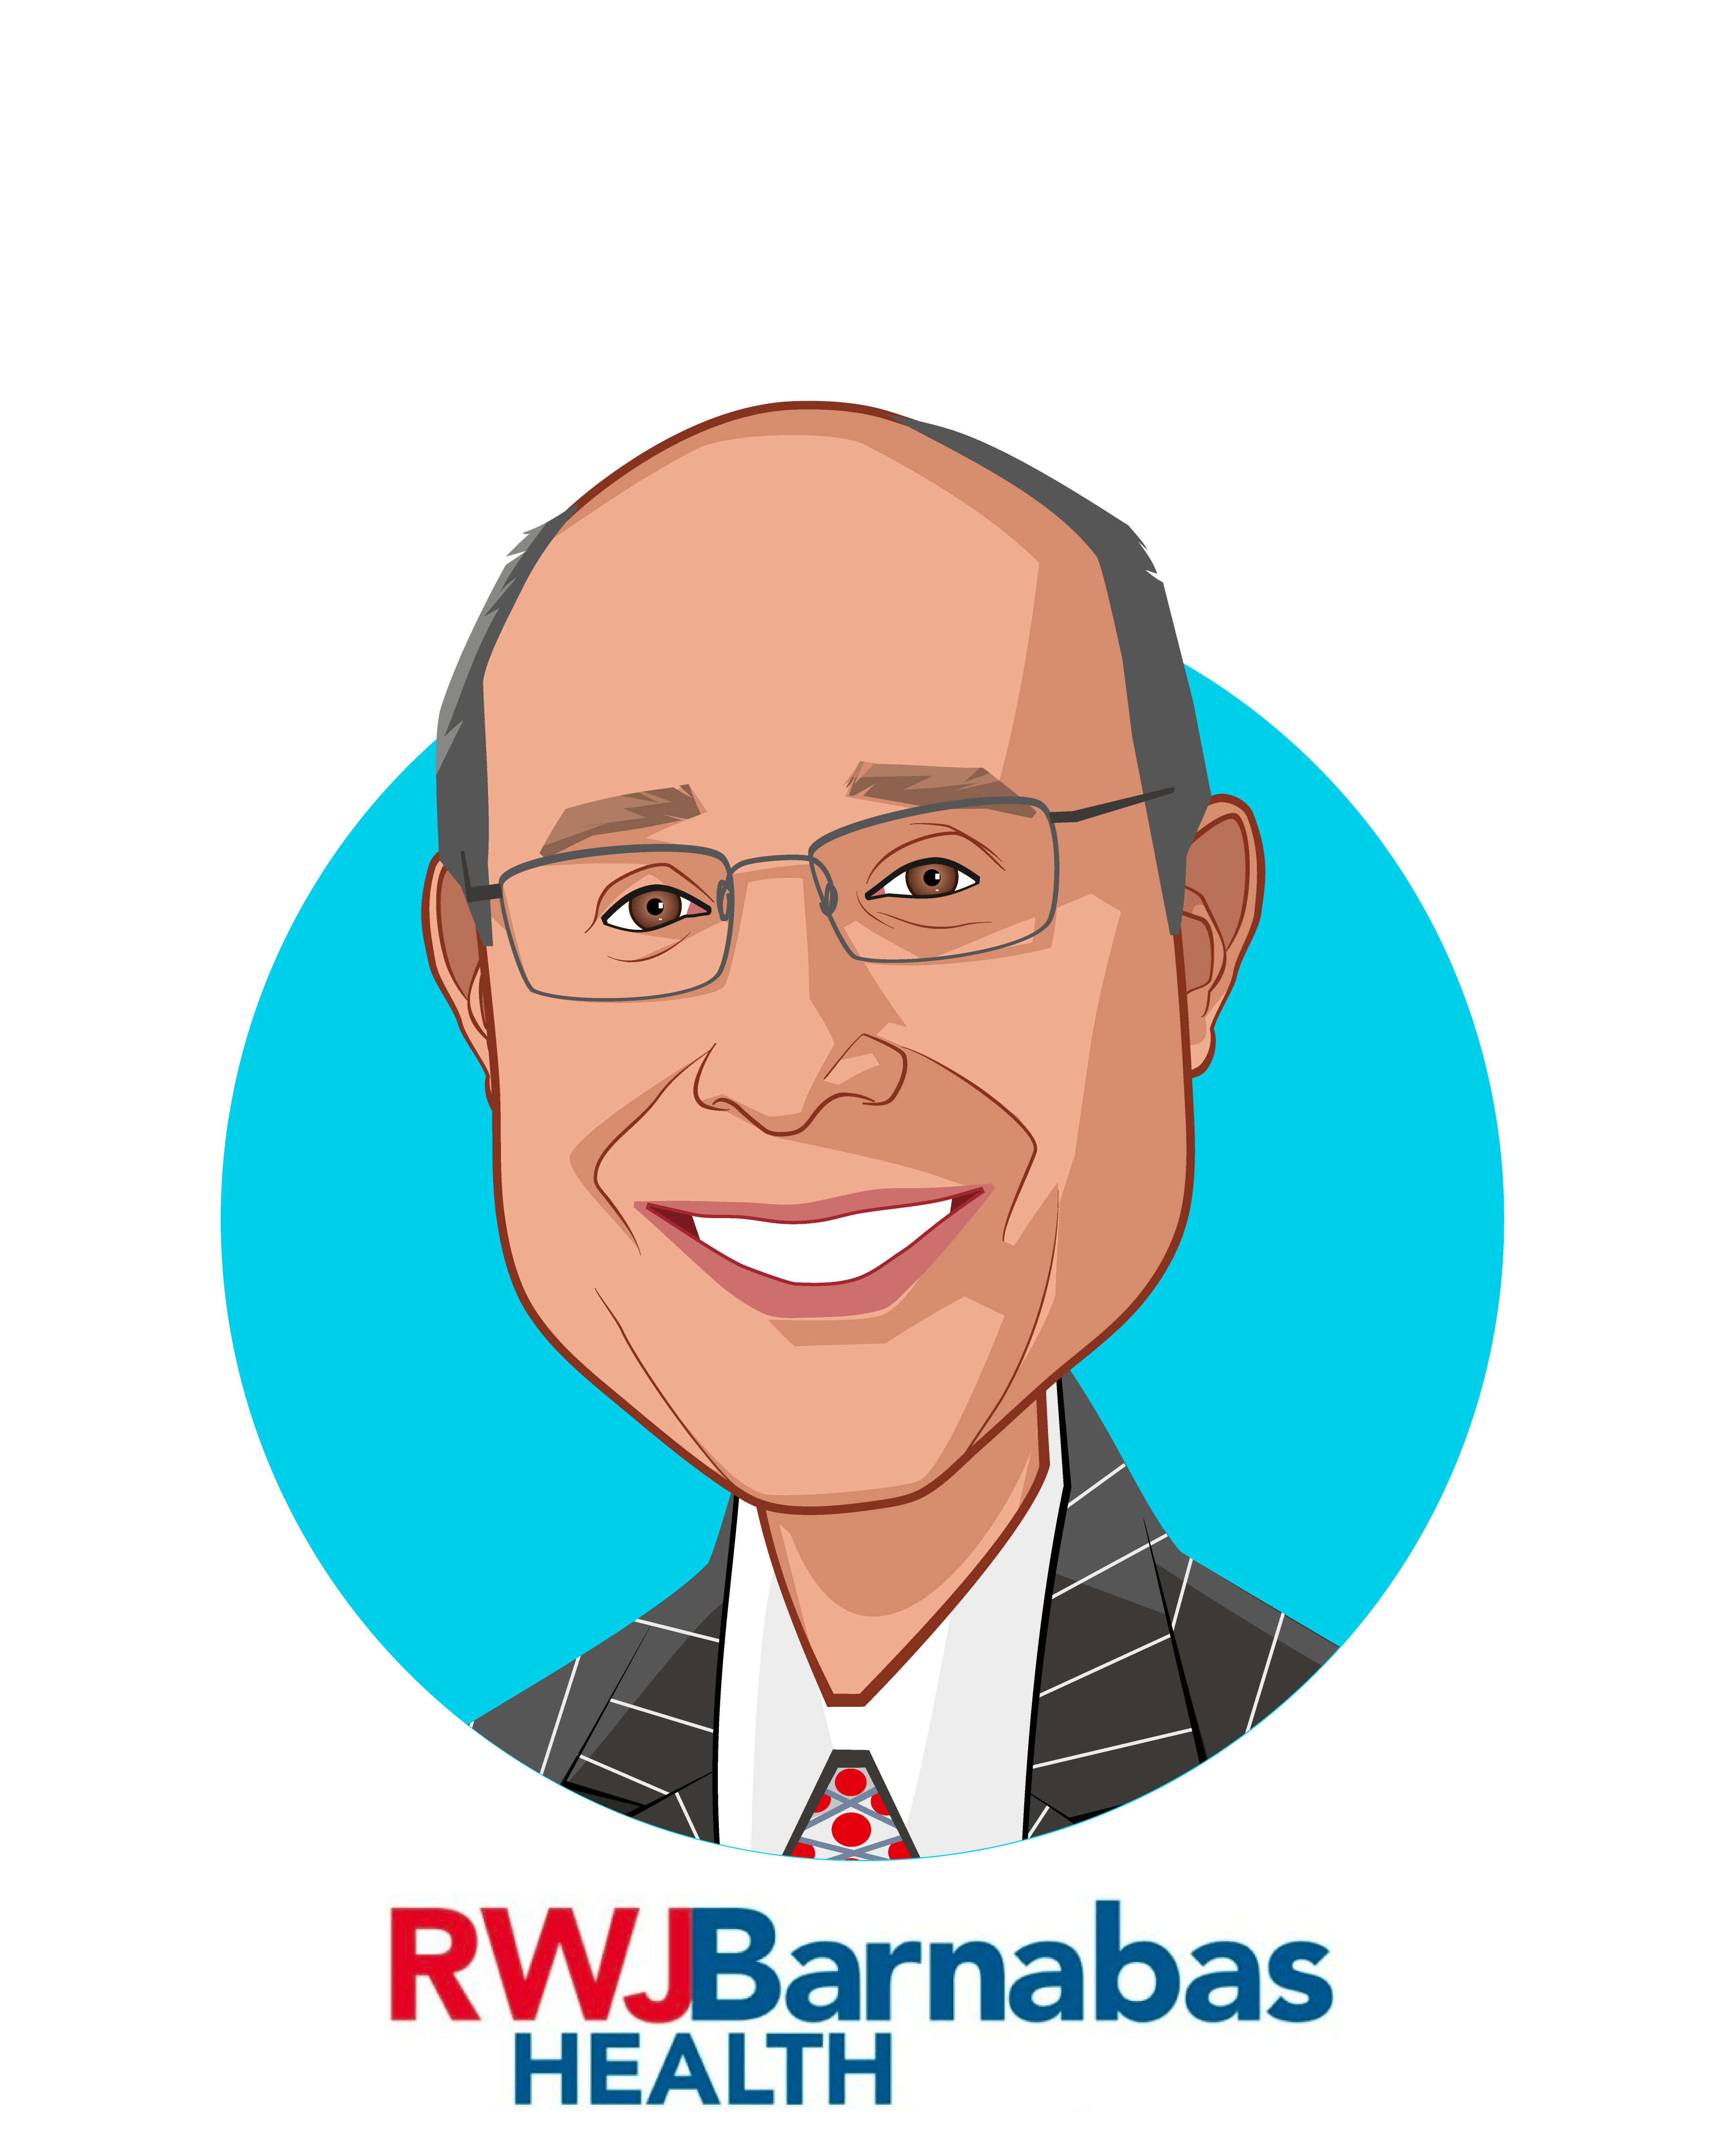 Main caricature of Barry H. Ostrowsky, who is speaking at HLTH and is President and Chief Executive Officer at RWJBarnabas Health